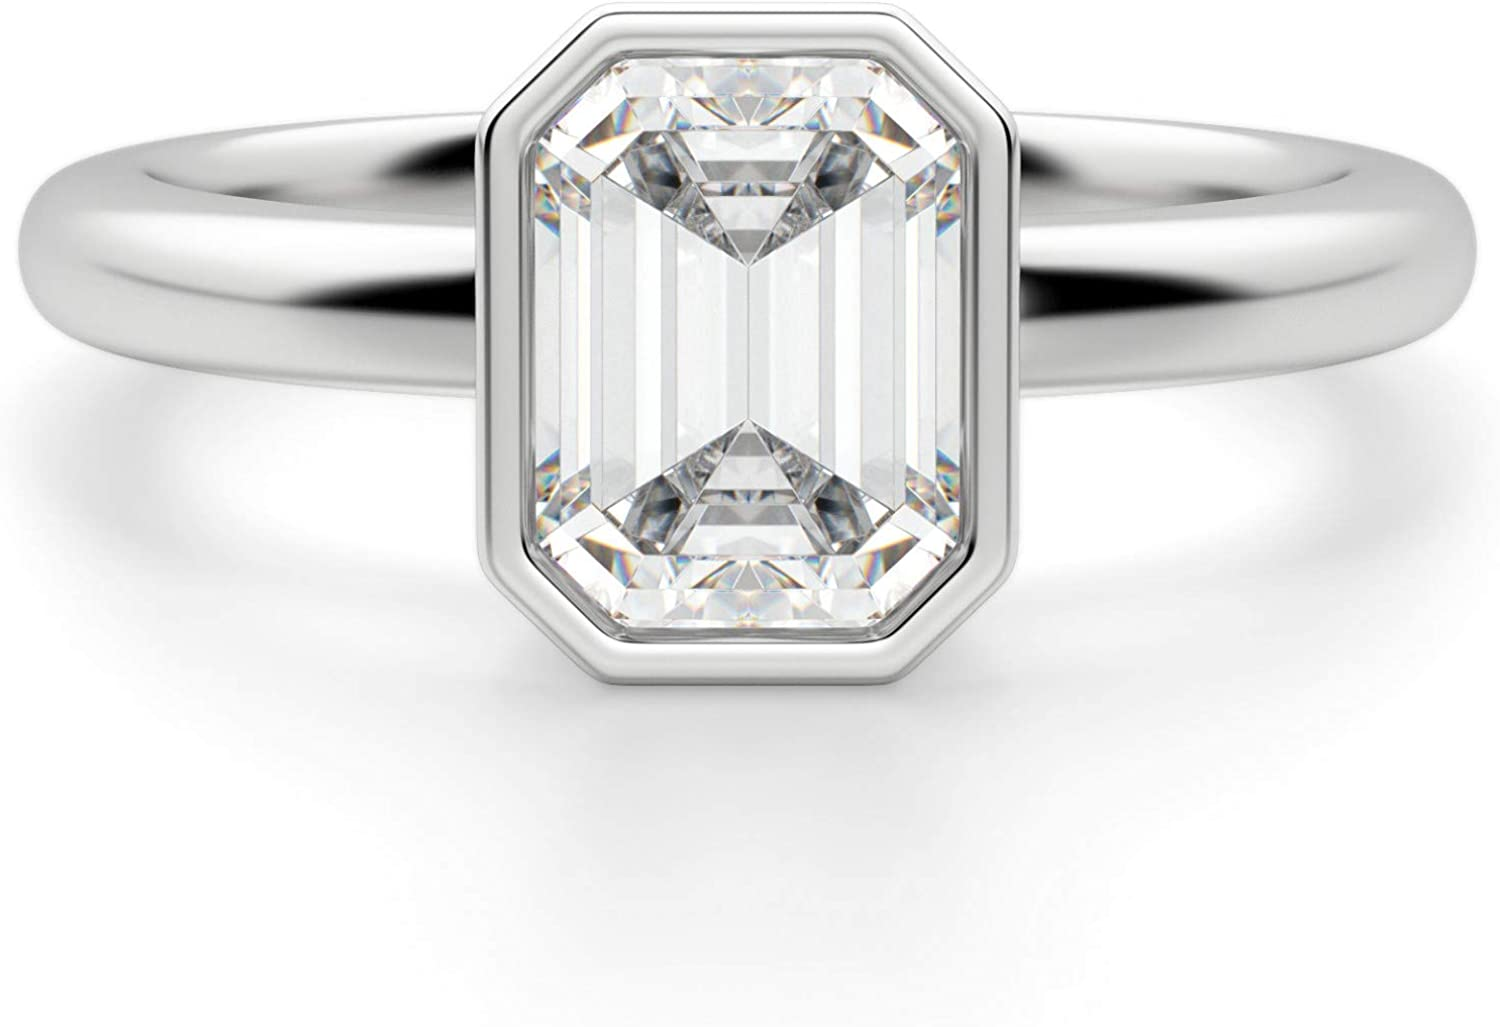 Mail order Bhumi Gems 3CT Emerald Colorless VVS1 Moissanite Ring Engagement Max 47% OFF